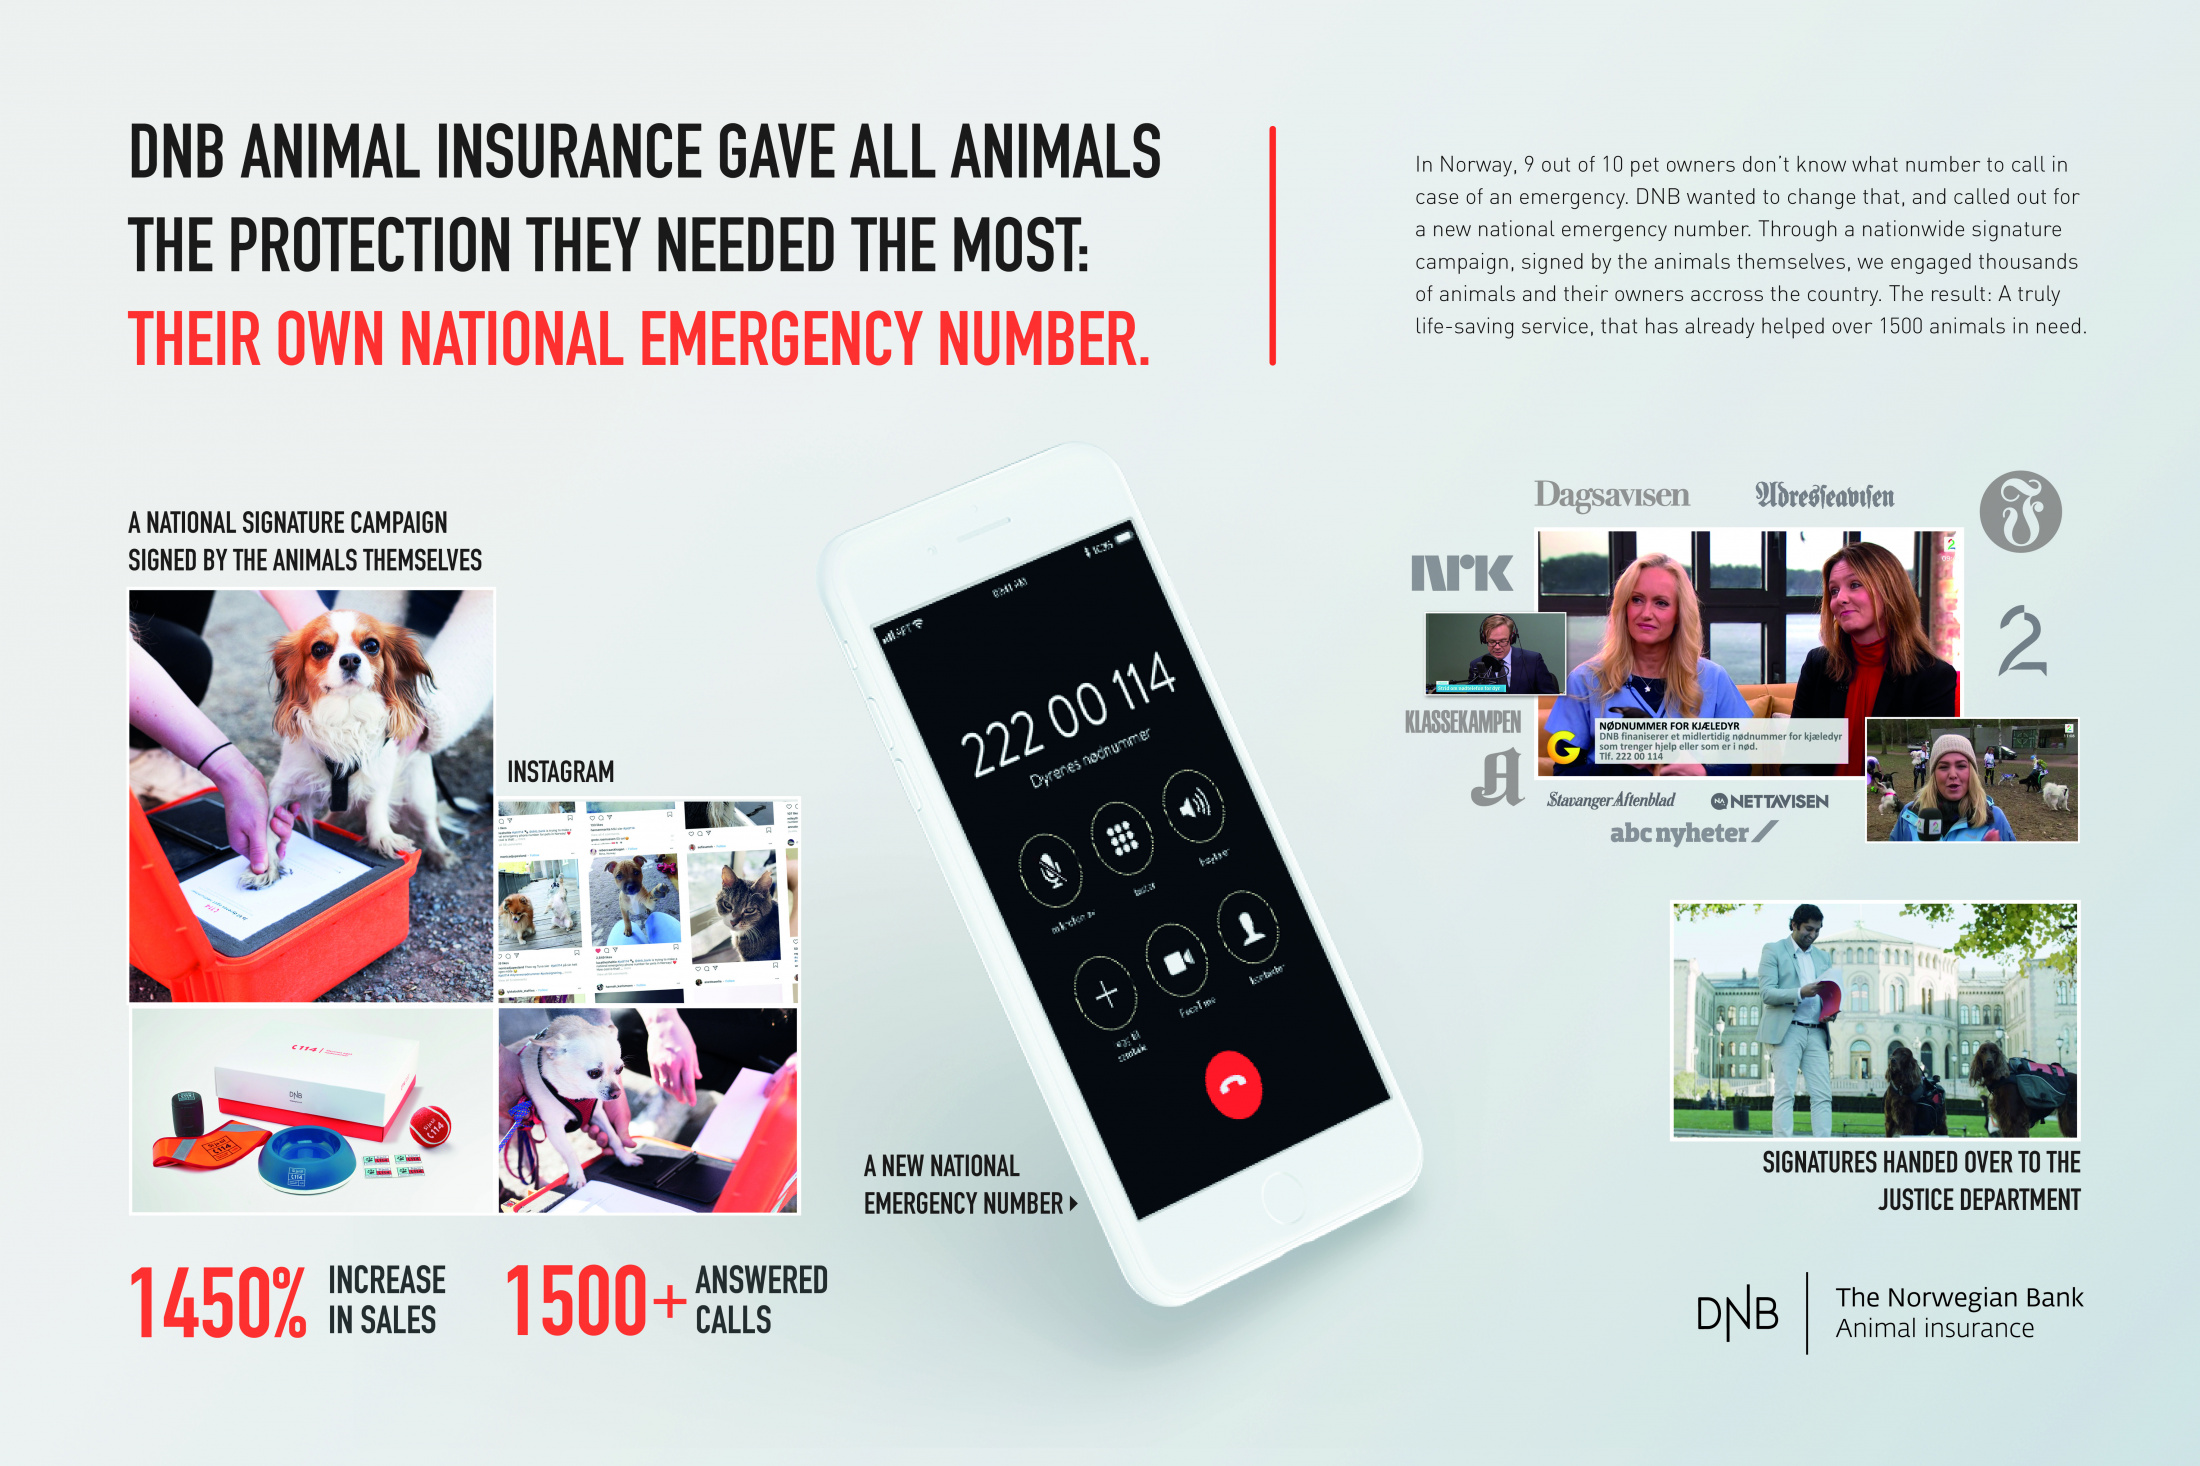 The Animals' Own Emergency Number Thumbnail